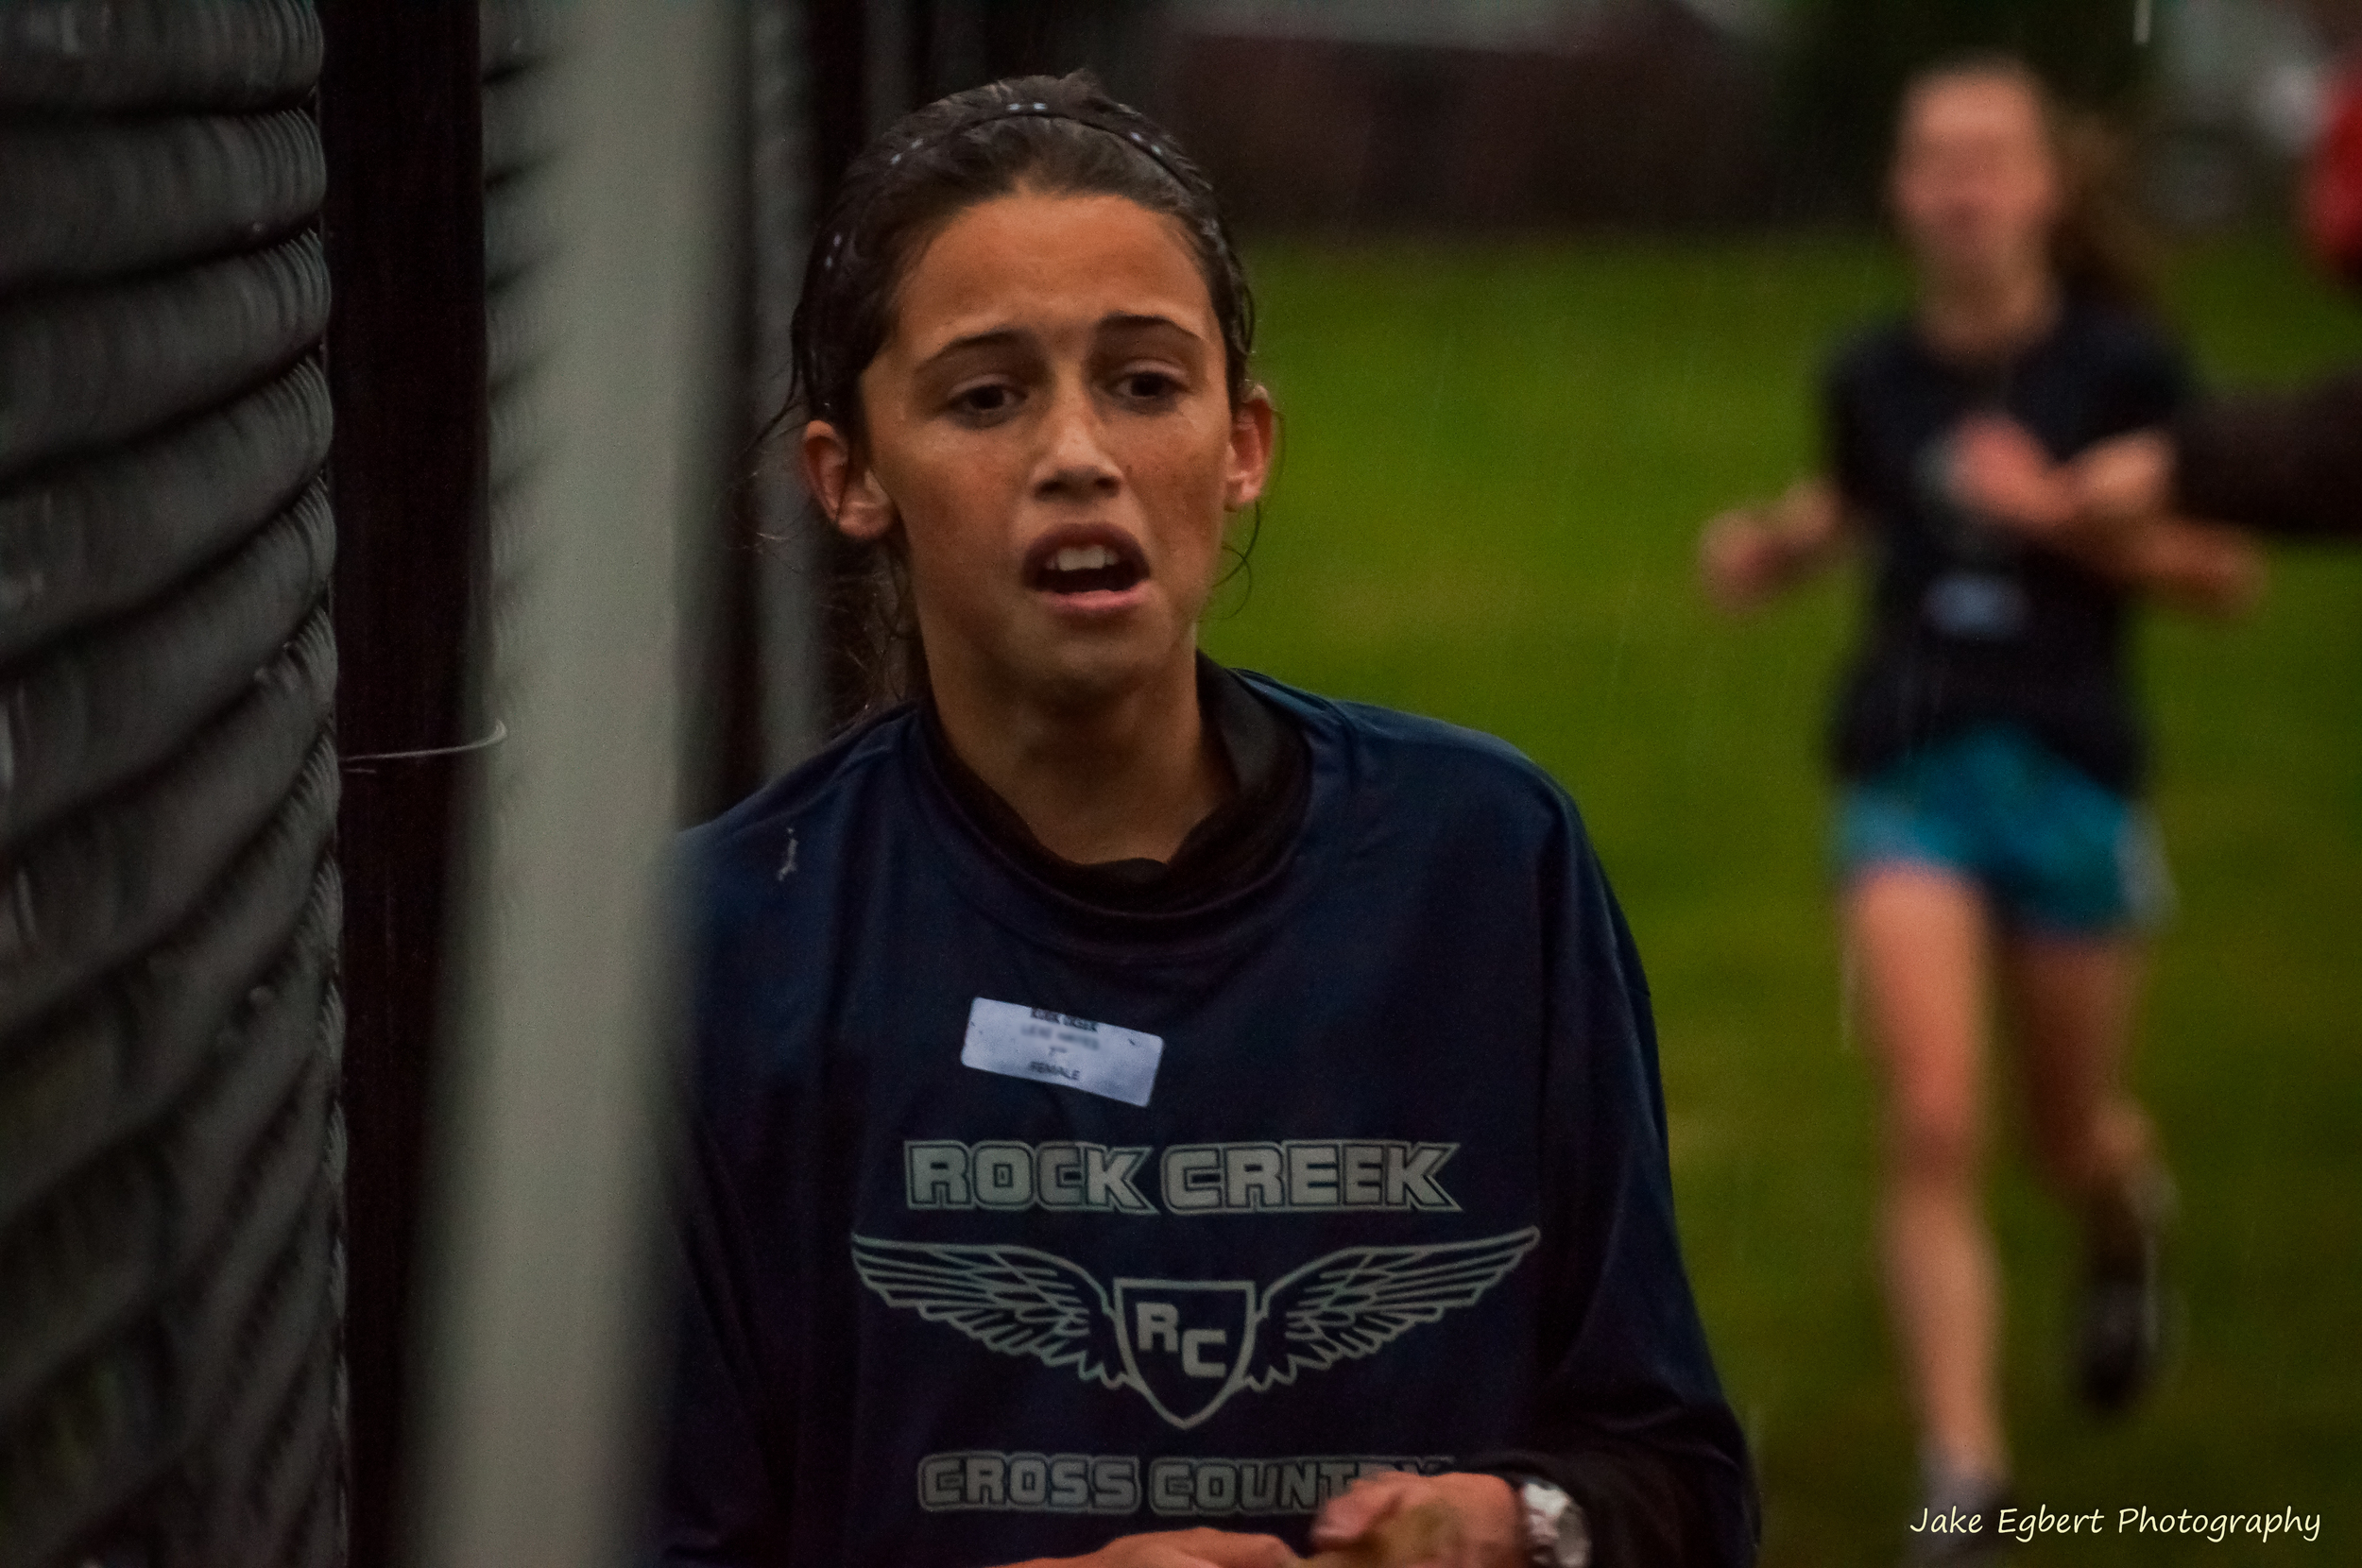 2012 Girls Champion - Meet held at Happy Valley Middle School in torrential rain. One heck of a run!